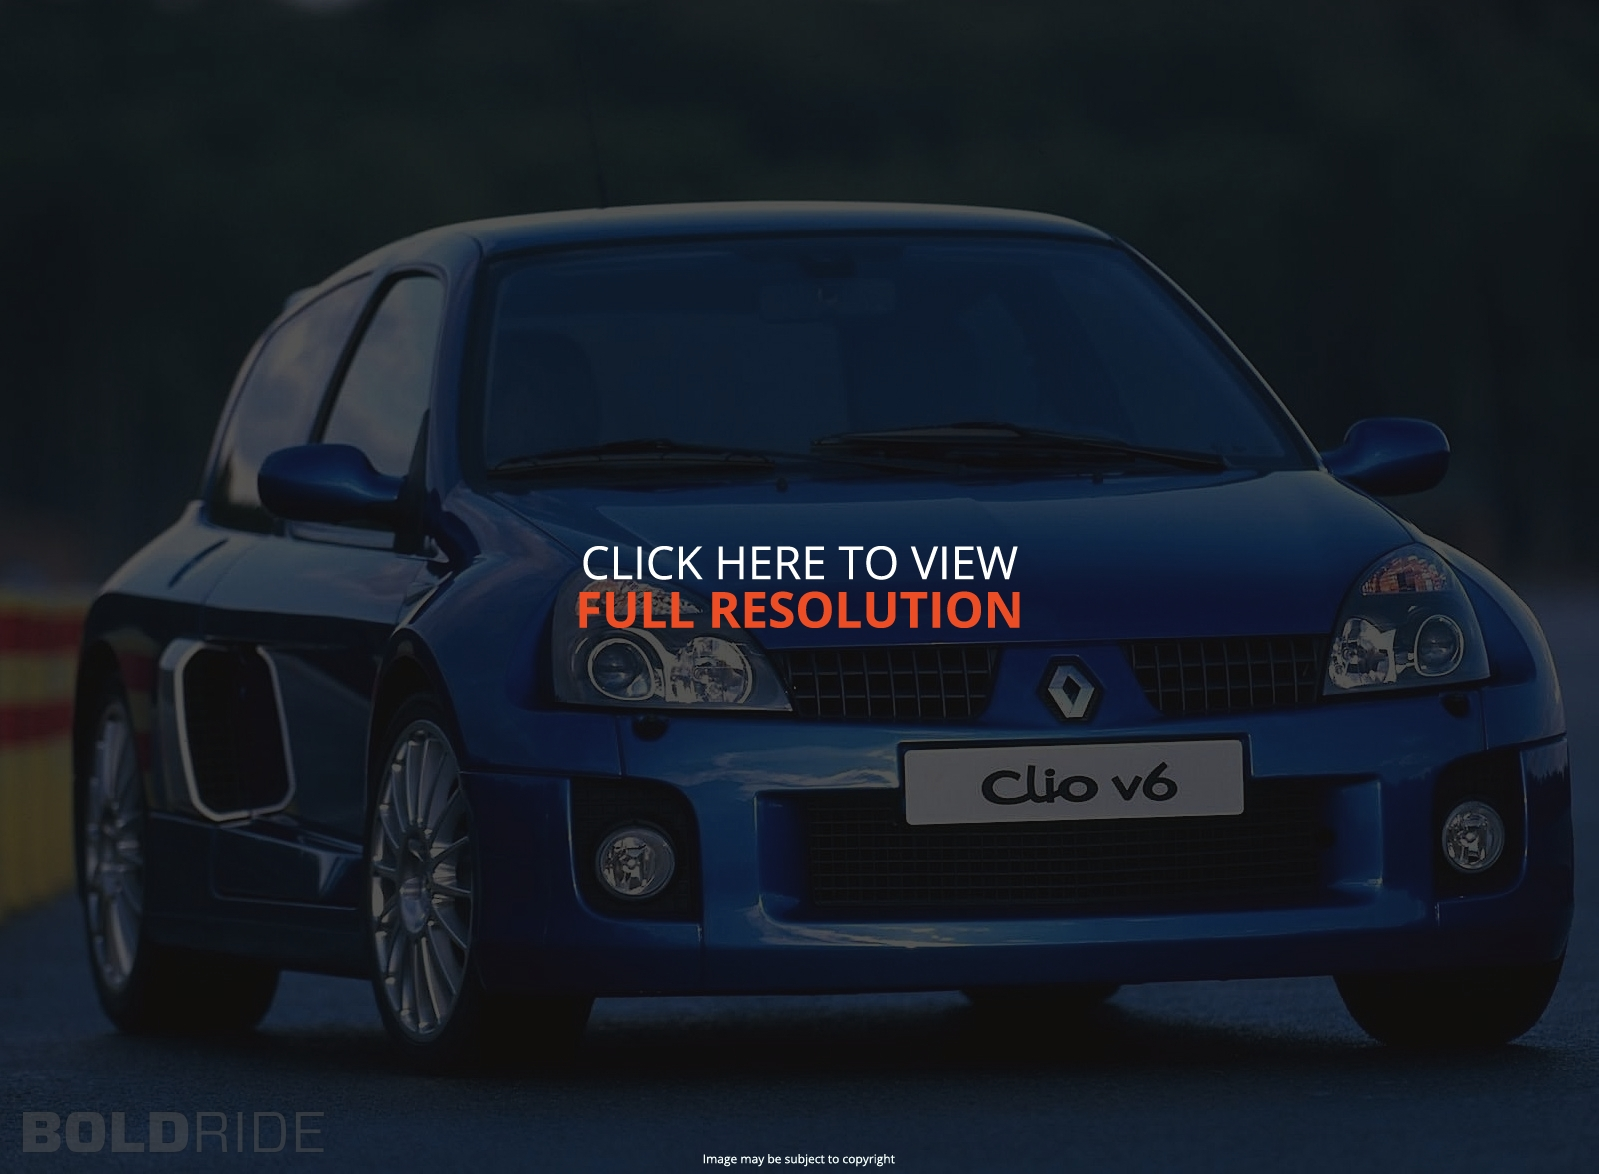 2001 renault clio ii v6 sport coupe pictures information and specs auto. Black Bedroom Furniture Sets. Home Design Ideas